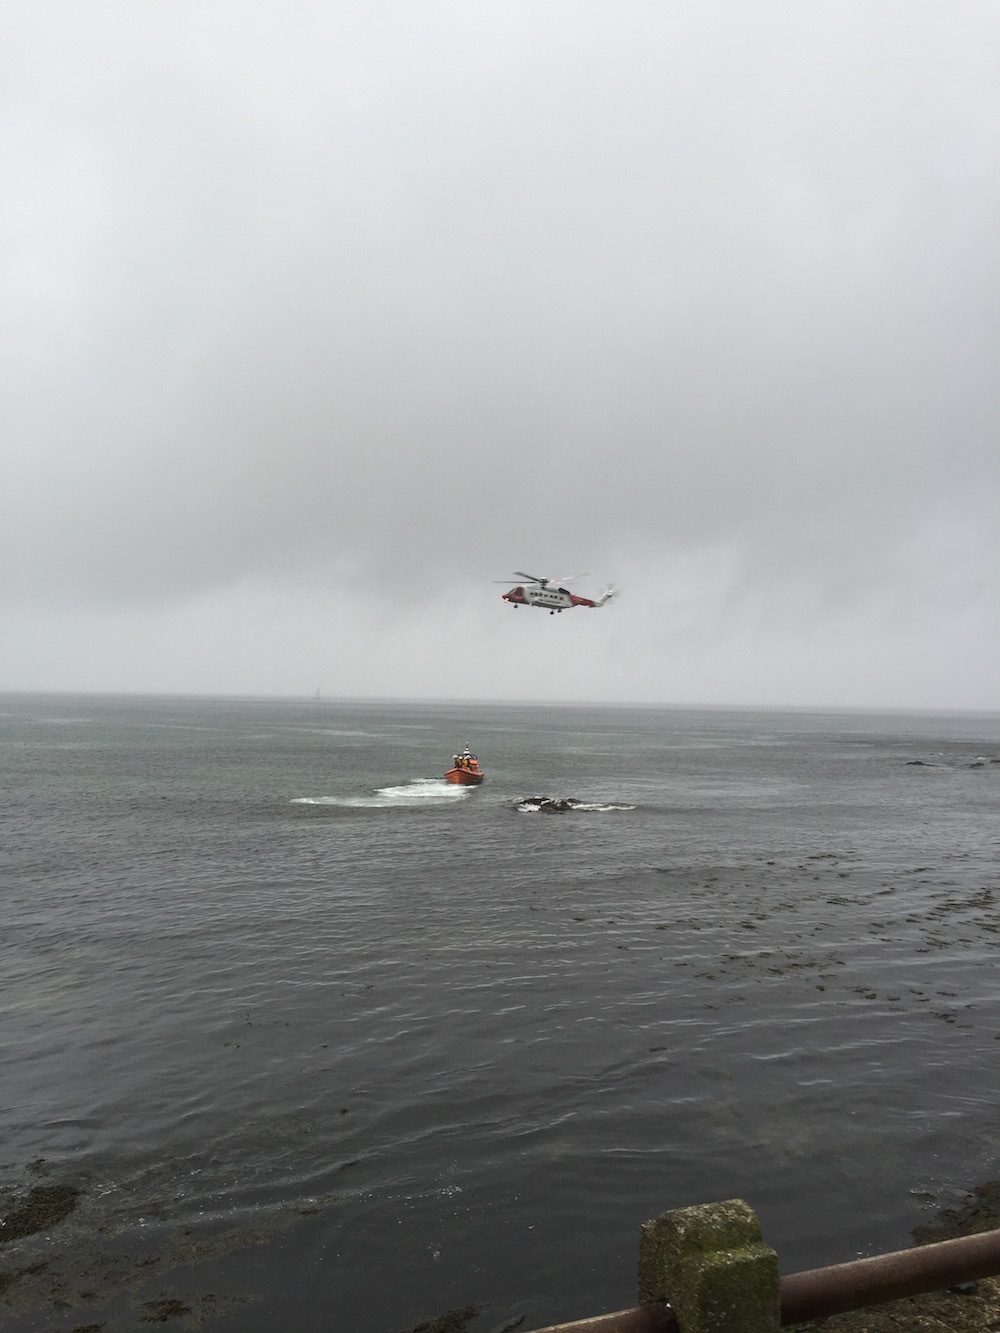 Picture courtesy of RNLI Macduff